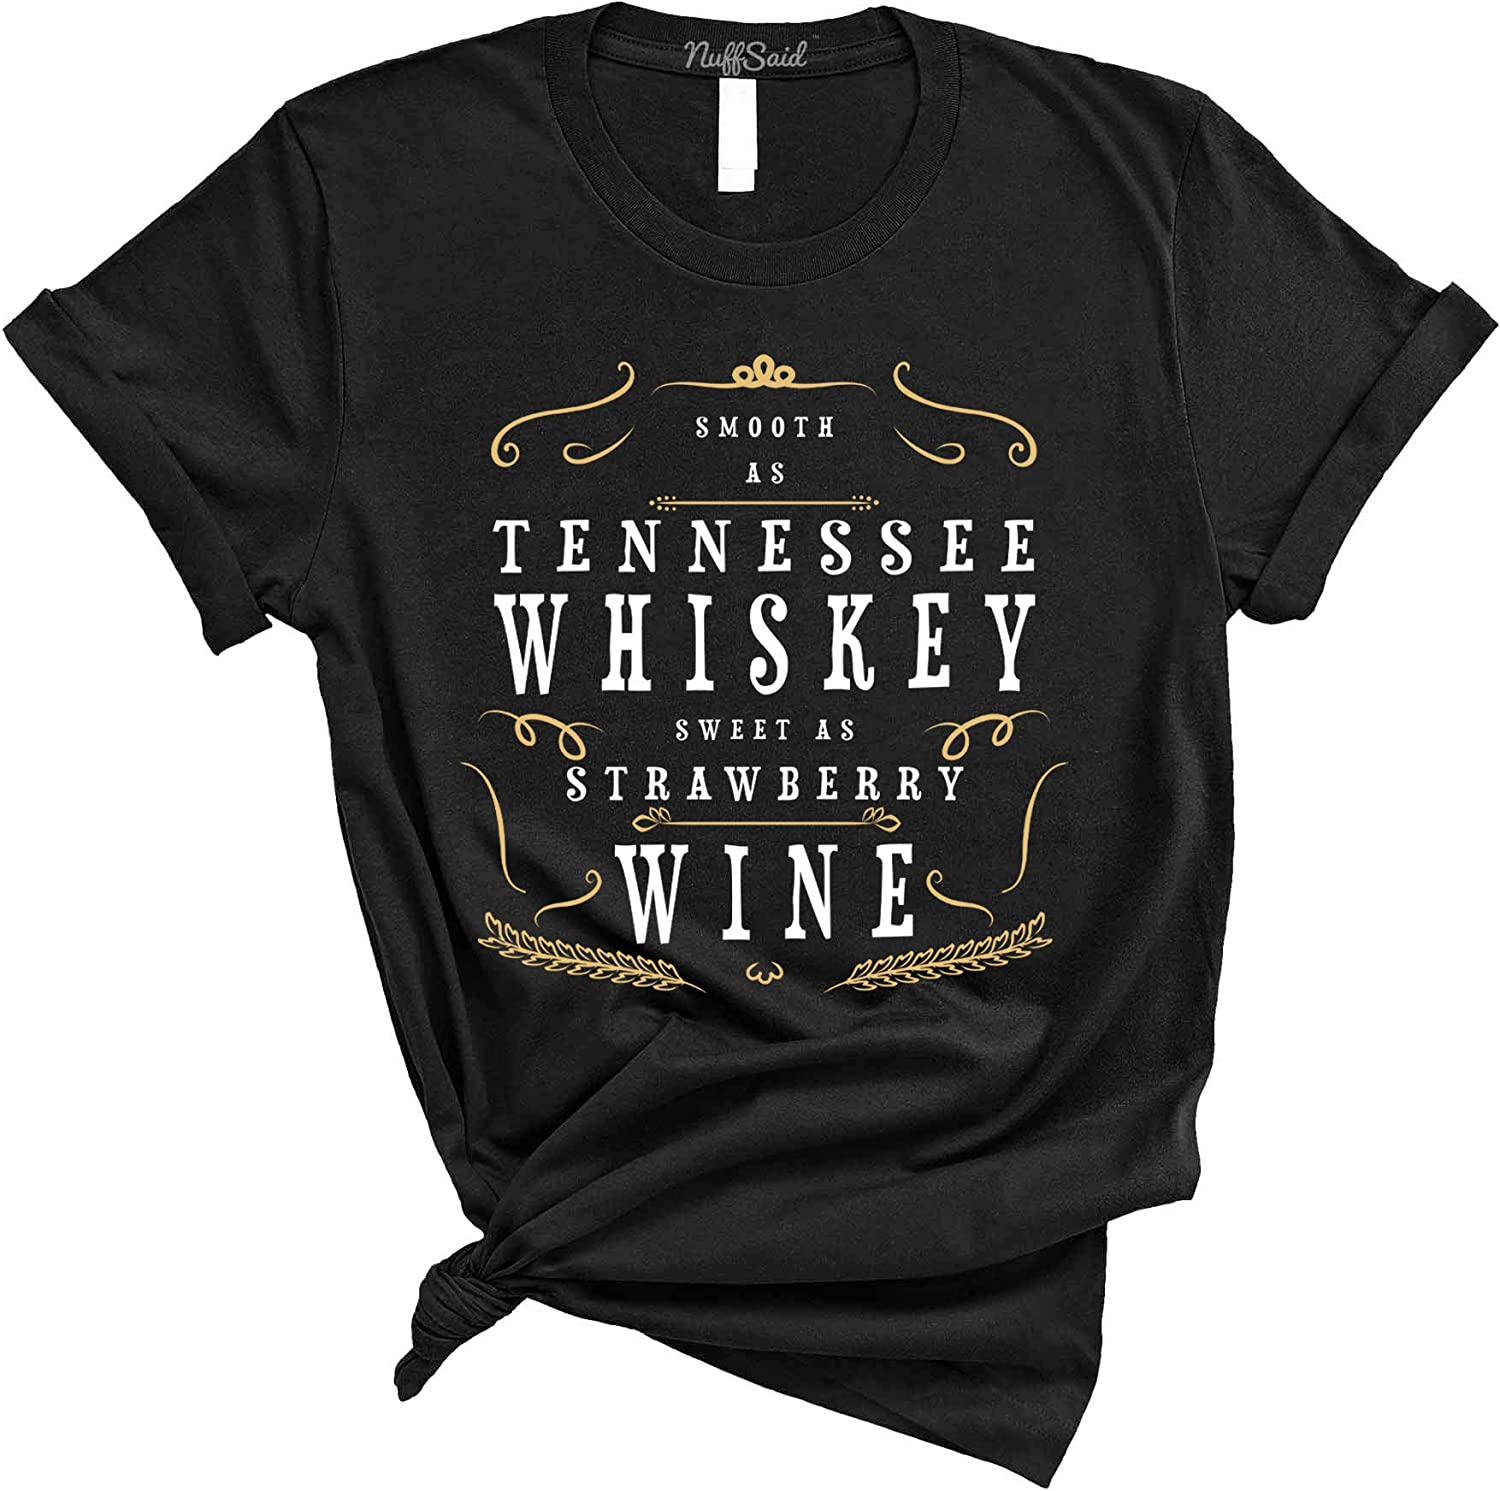 NuffSaid Smooth as Tennessee Whiskey, Sweet as Strawberry Wine T-Shirt - Country Music Tee